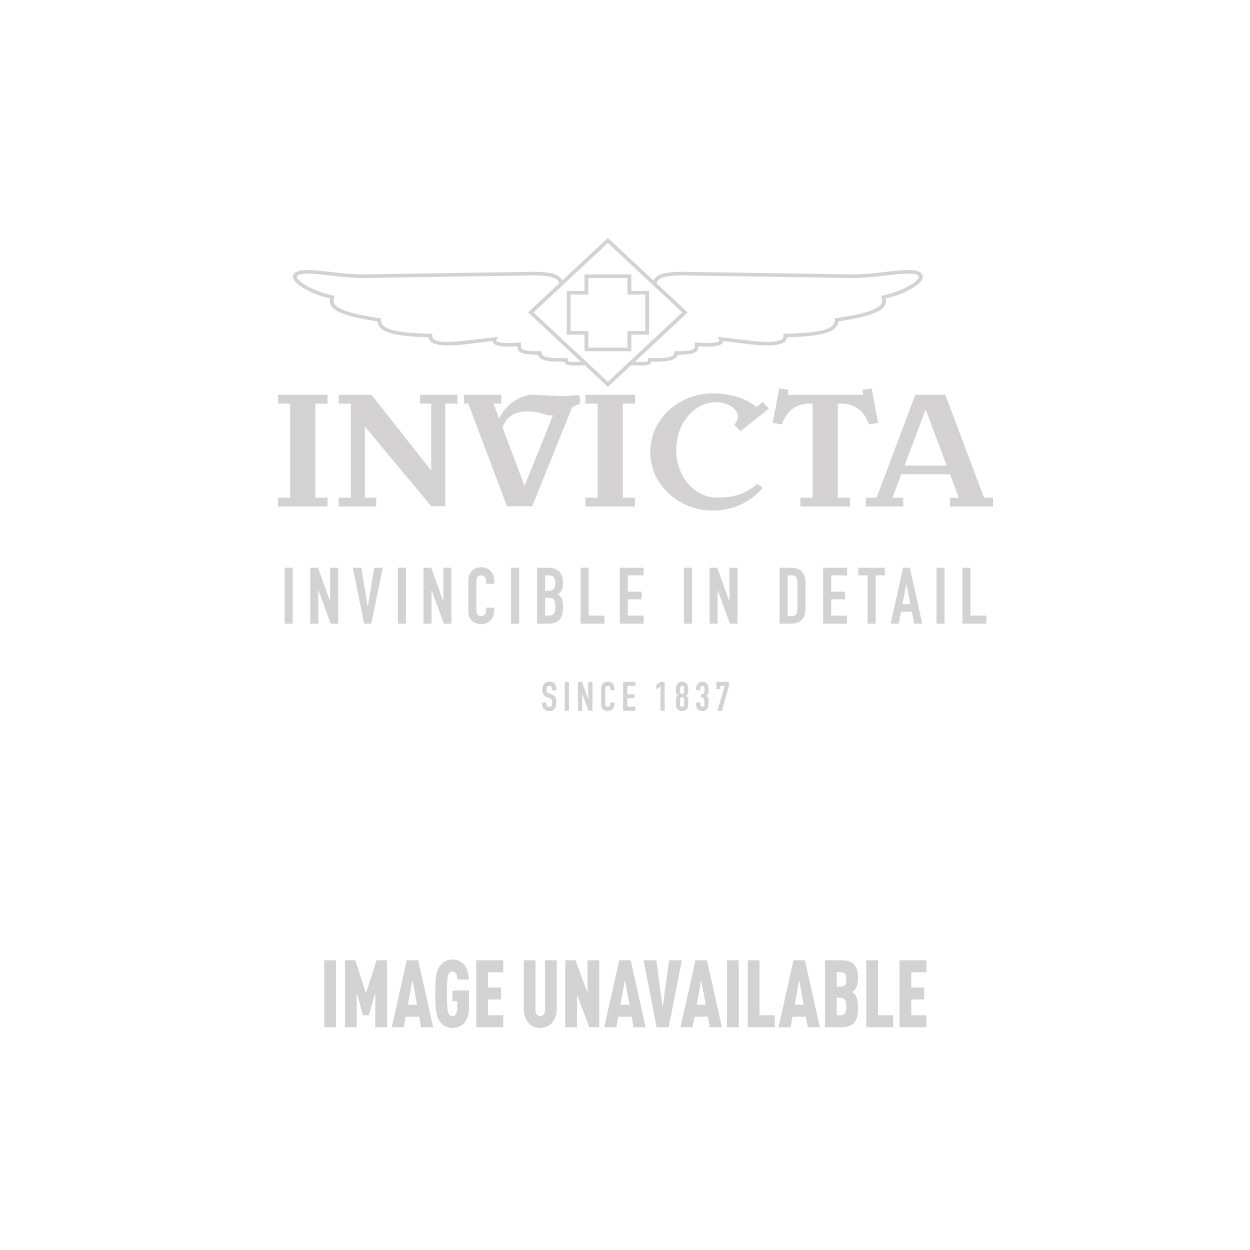 Invicta Reserve Swiss Made Quartz Watch - Stainless Steel case with Grey tone Silicone band - Model 18724